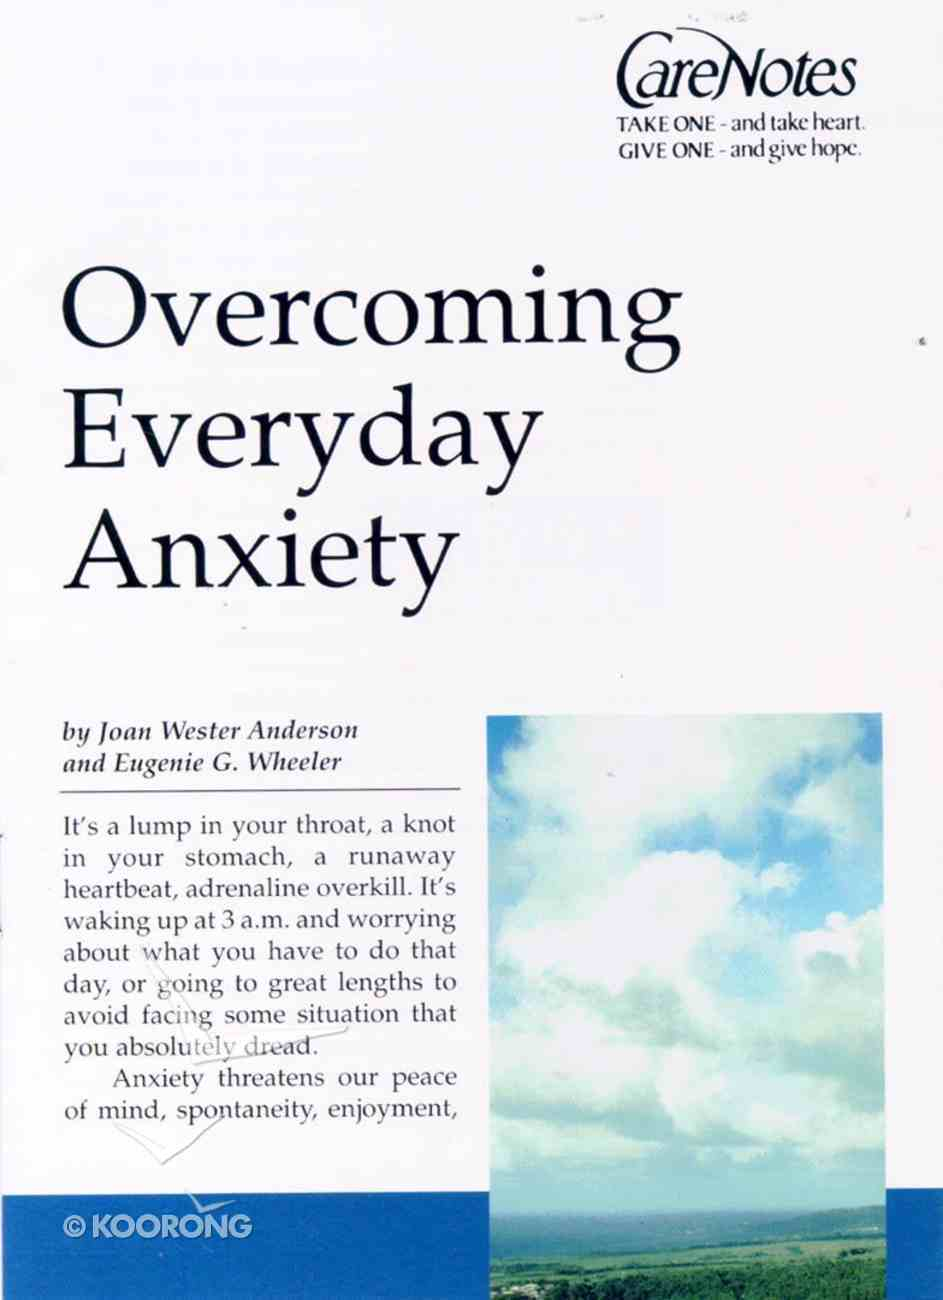 Care Notes: When Fear and Anxiety Seem to Take Control Paperback